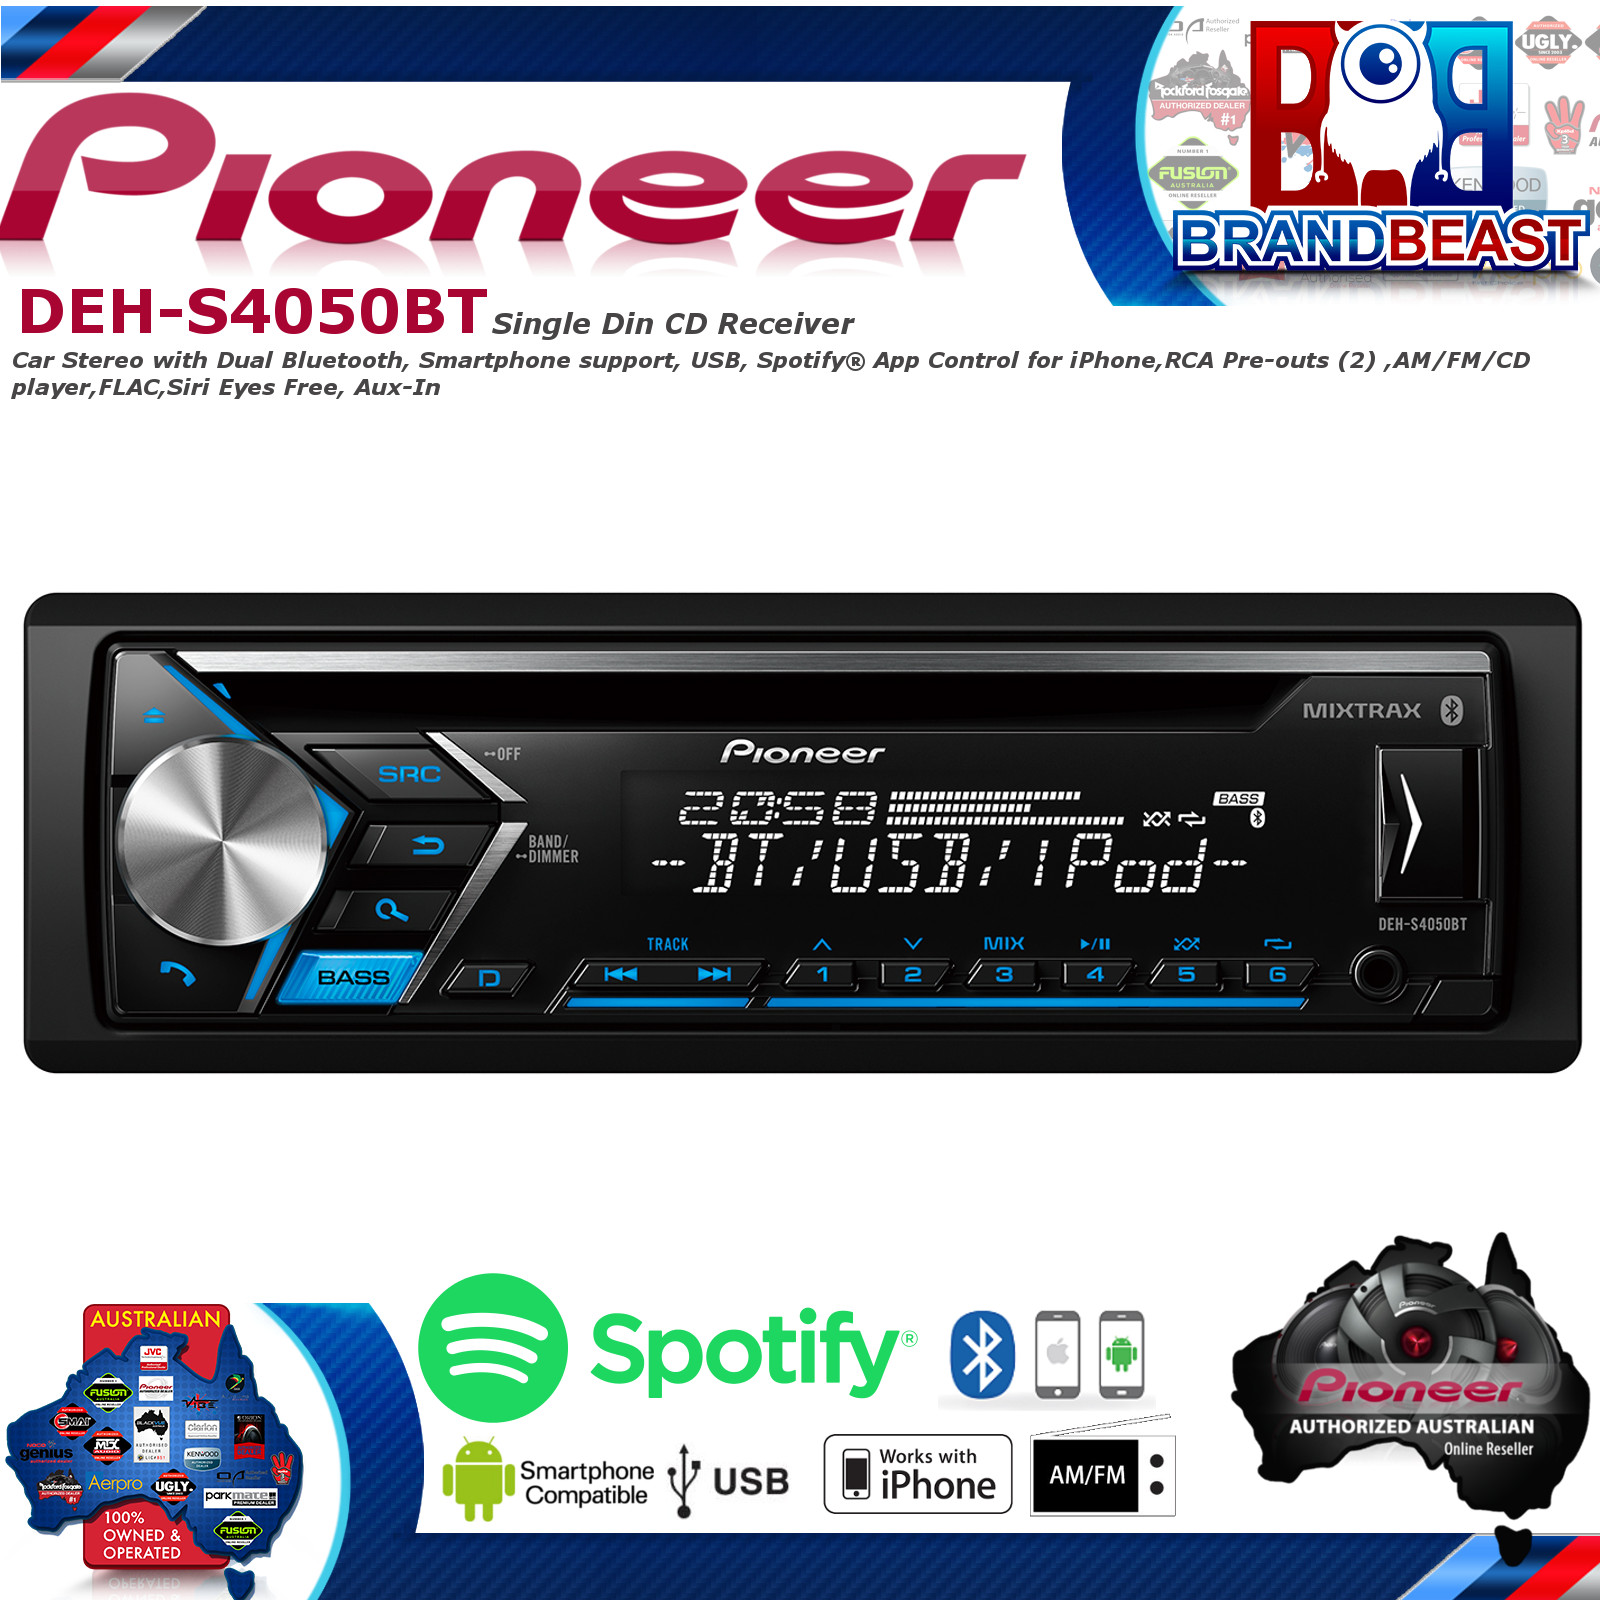 Pioneer car audio in dash units ebay new pioneer deh s4050bt aux usb iphone android bluetooth car stereo dehs4050bt fandeluxe Choice Image